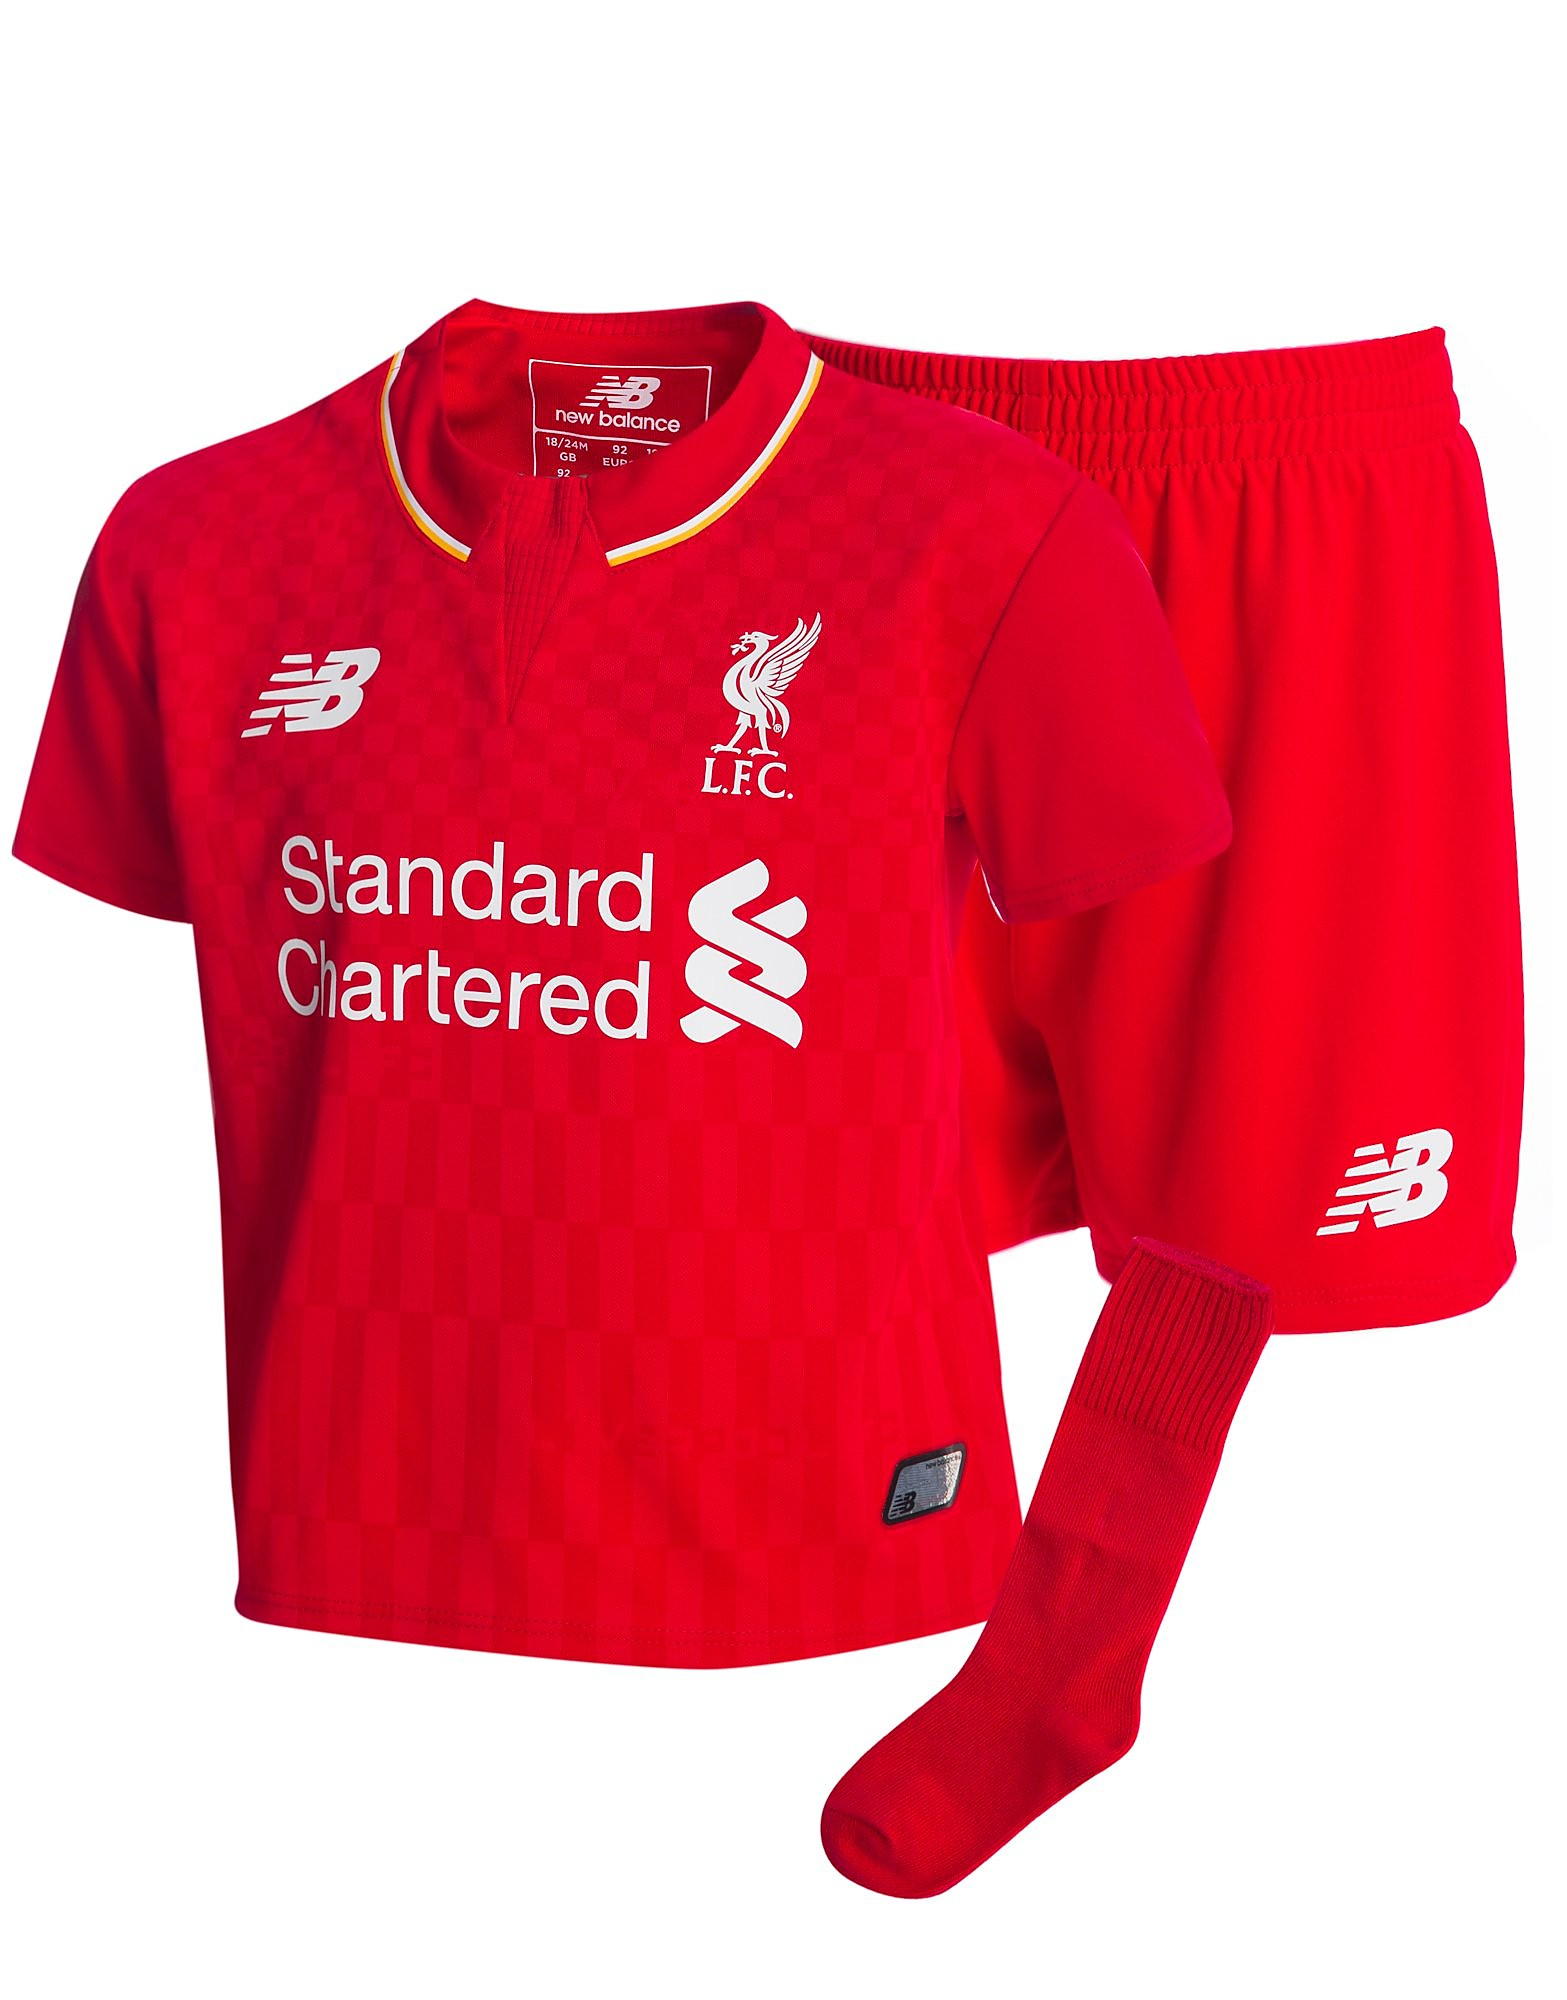 New Balance Liverpool FC 2015 Home Kit Infant - Red - Kids, Red